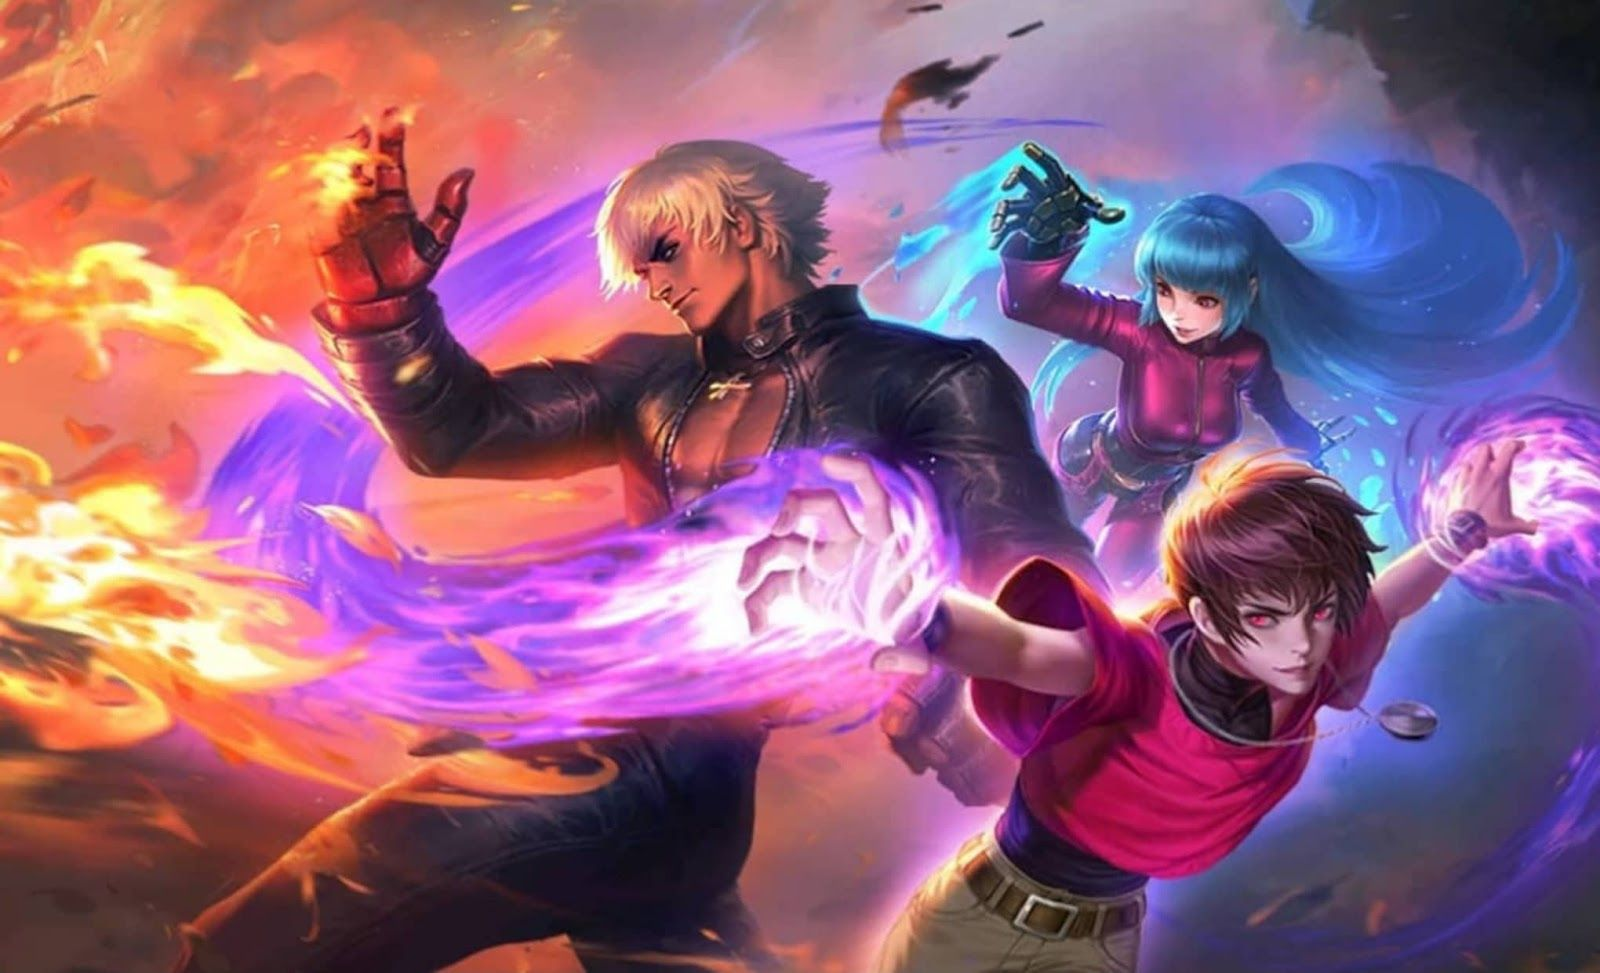 Mlbb Wallpaper Hd 4k King Of Fighters Moba Legends Anime